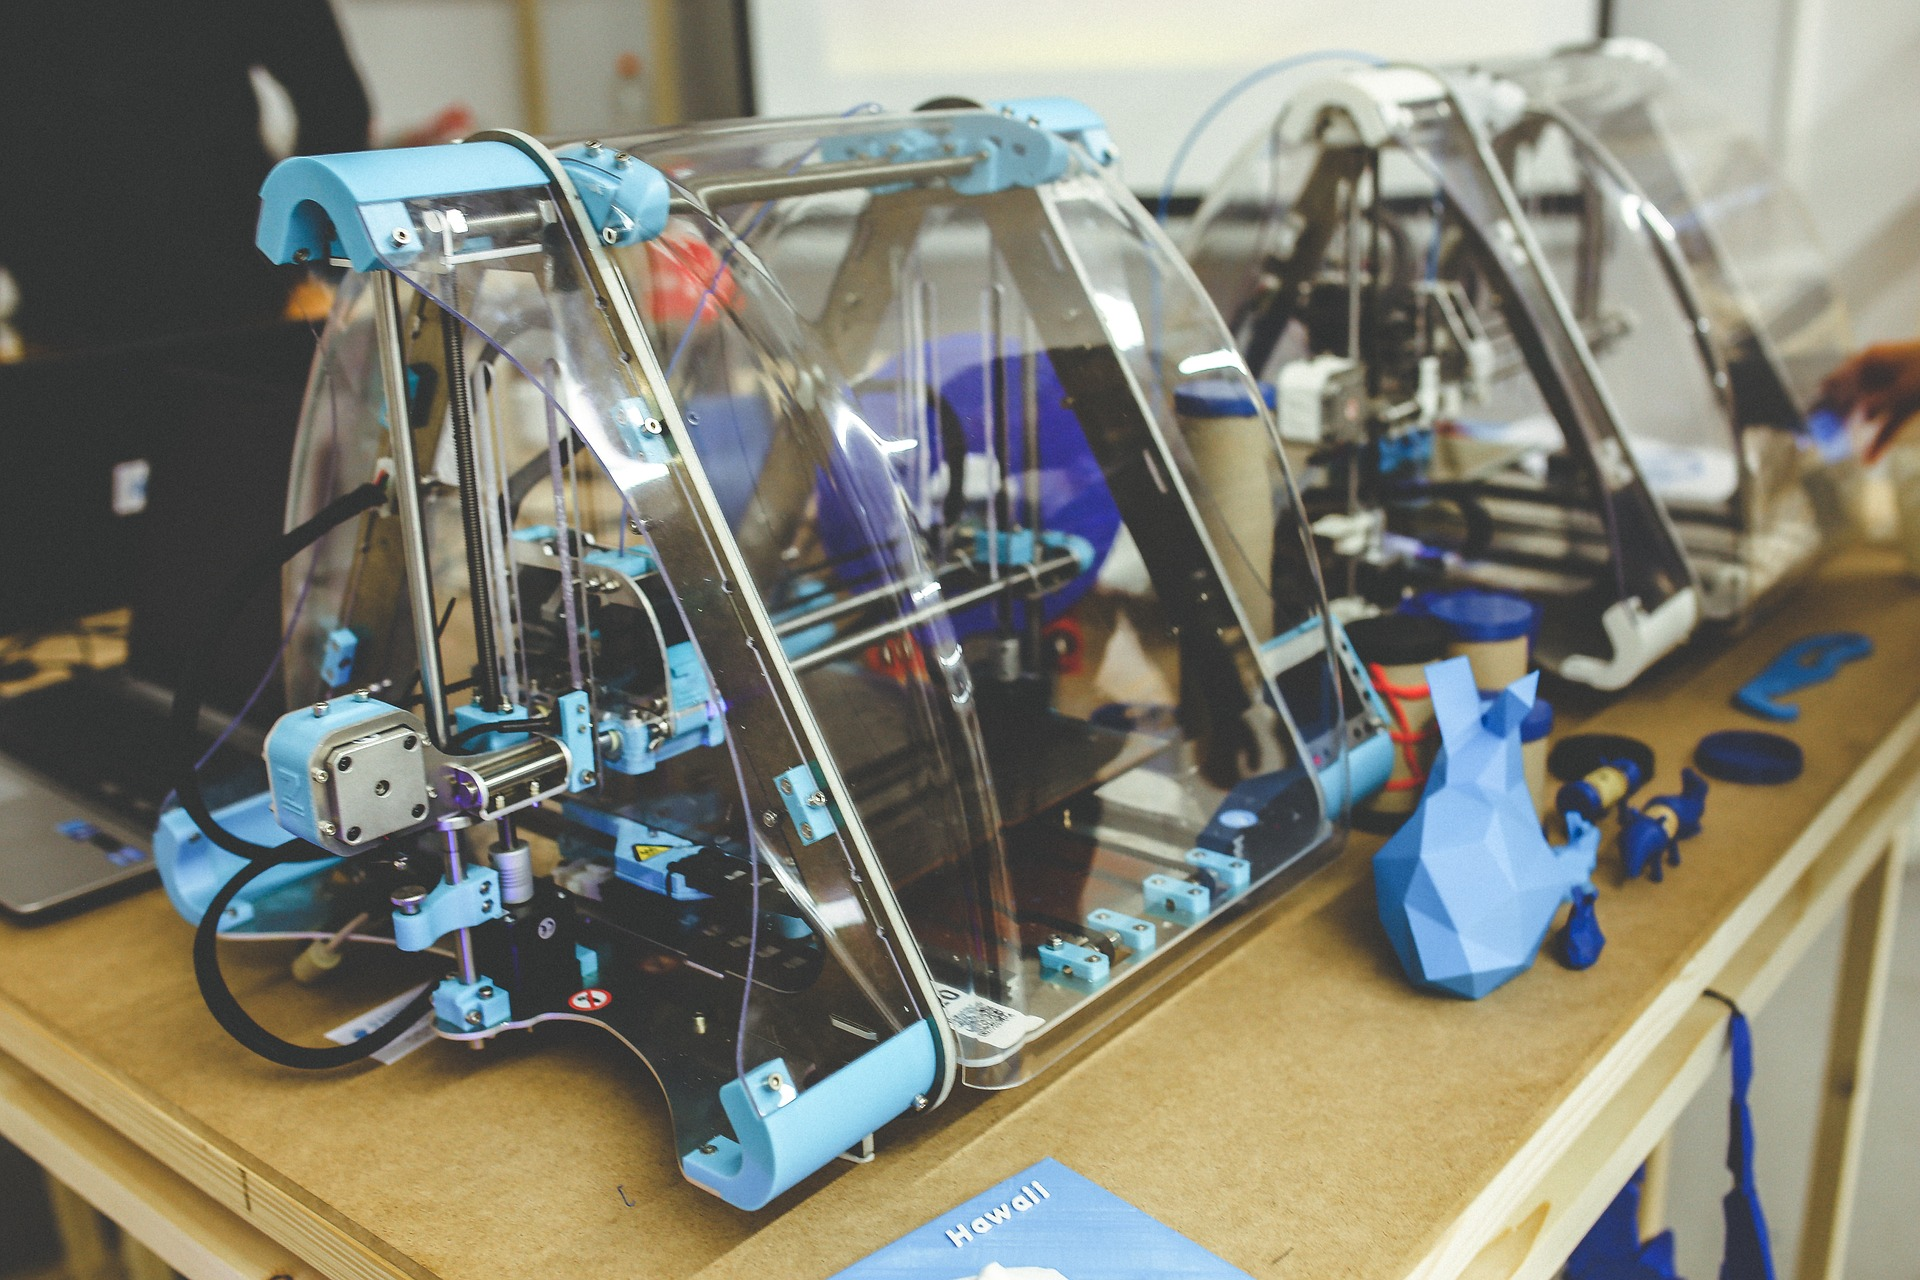 The engineer's guide to 3D printing